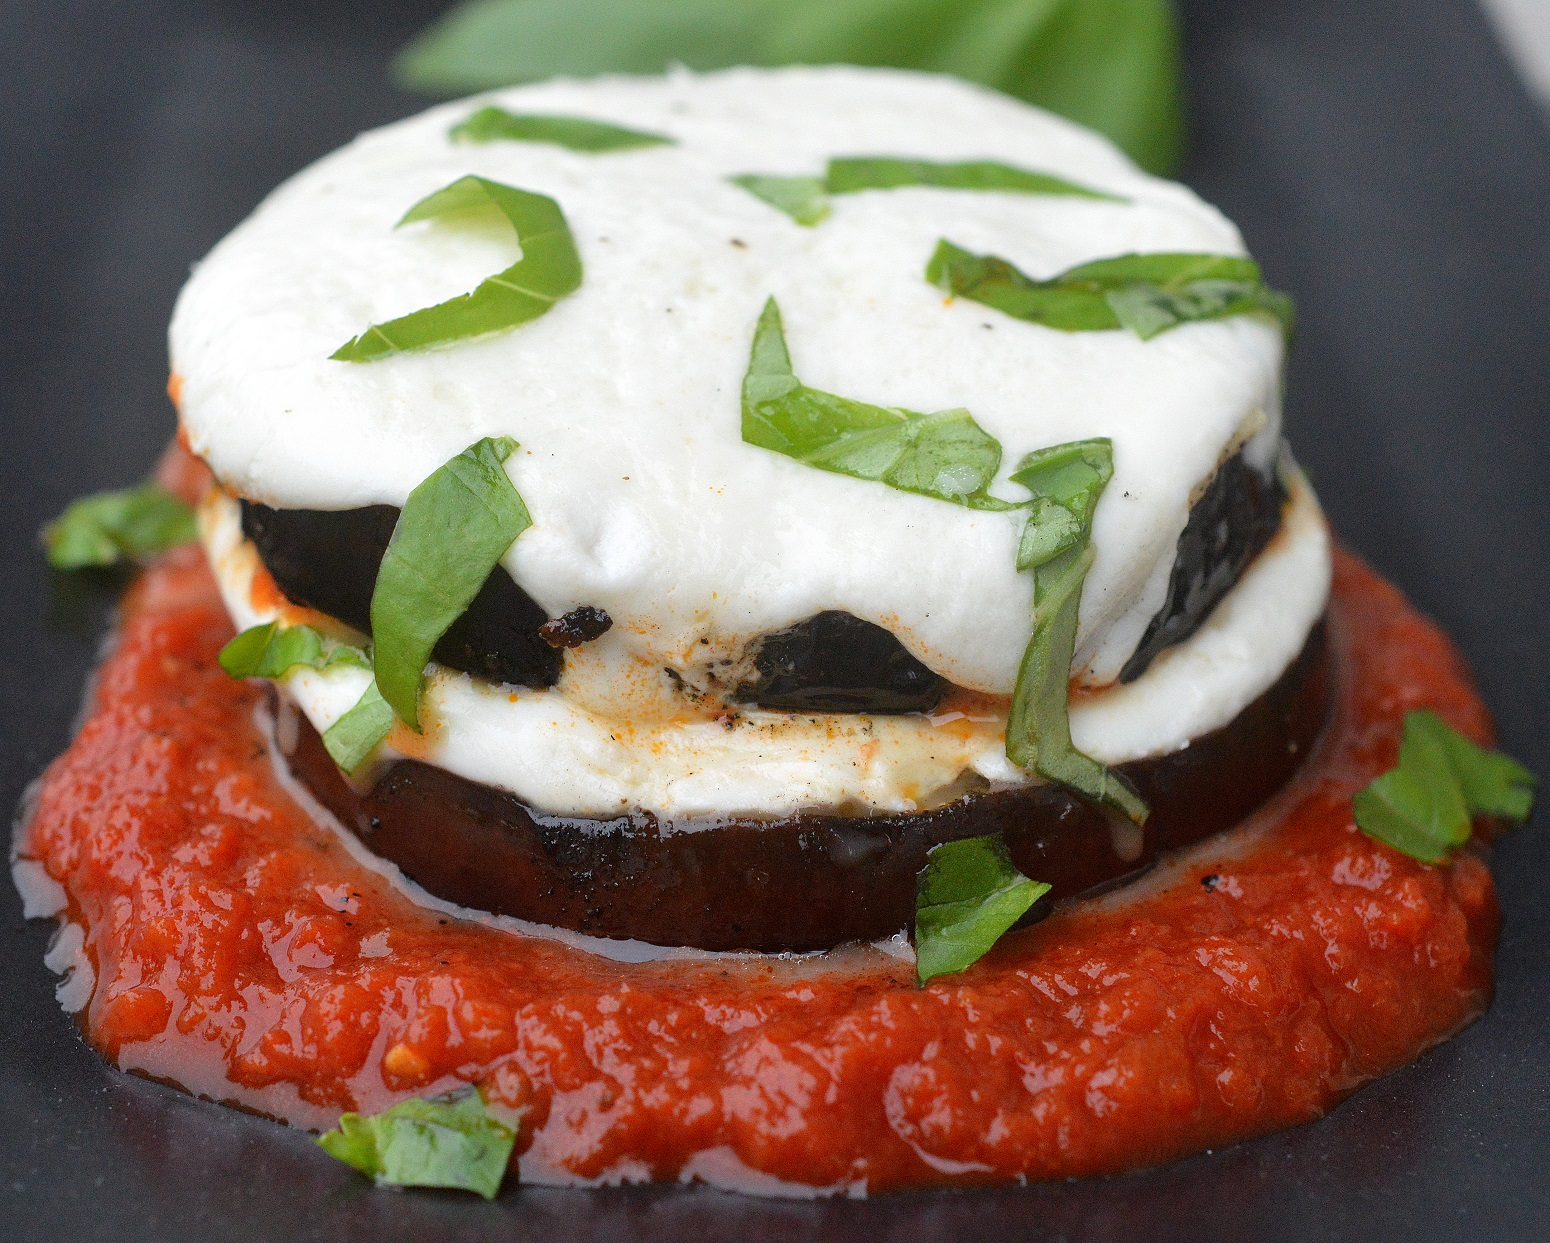 Grilled Eggplant Parmesan. A lightened up version of the original perfect for grilling season! Low carb & gluten free recipe.